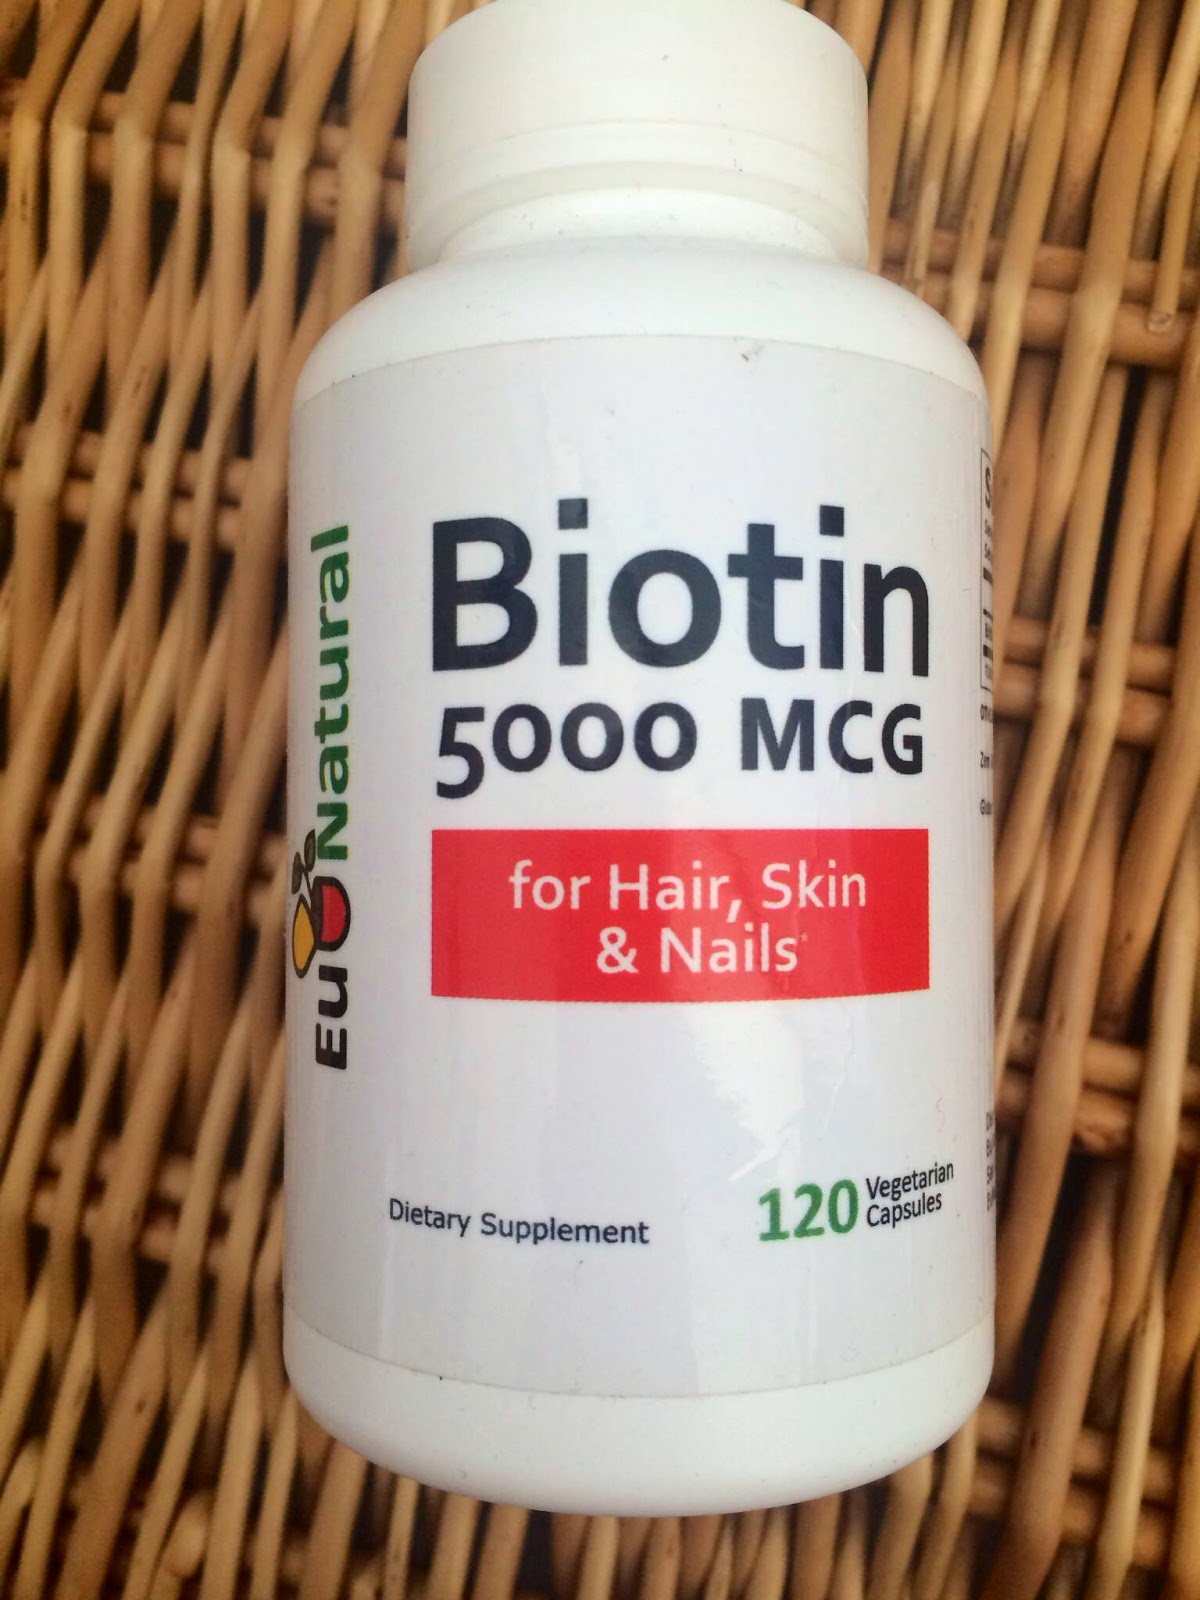 ... around 2.5 mg of biotin per day, so where can we get our daily fill